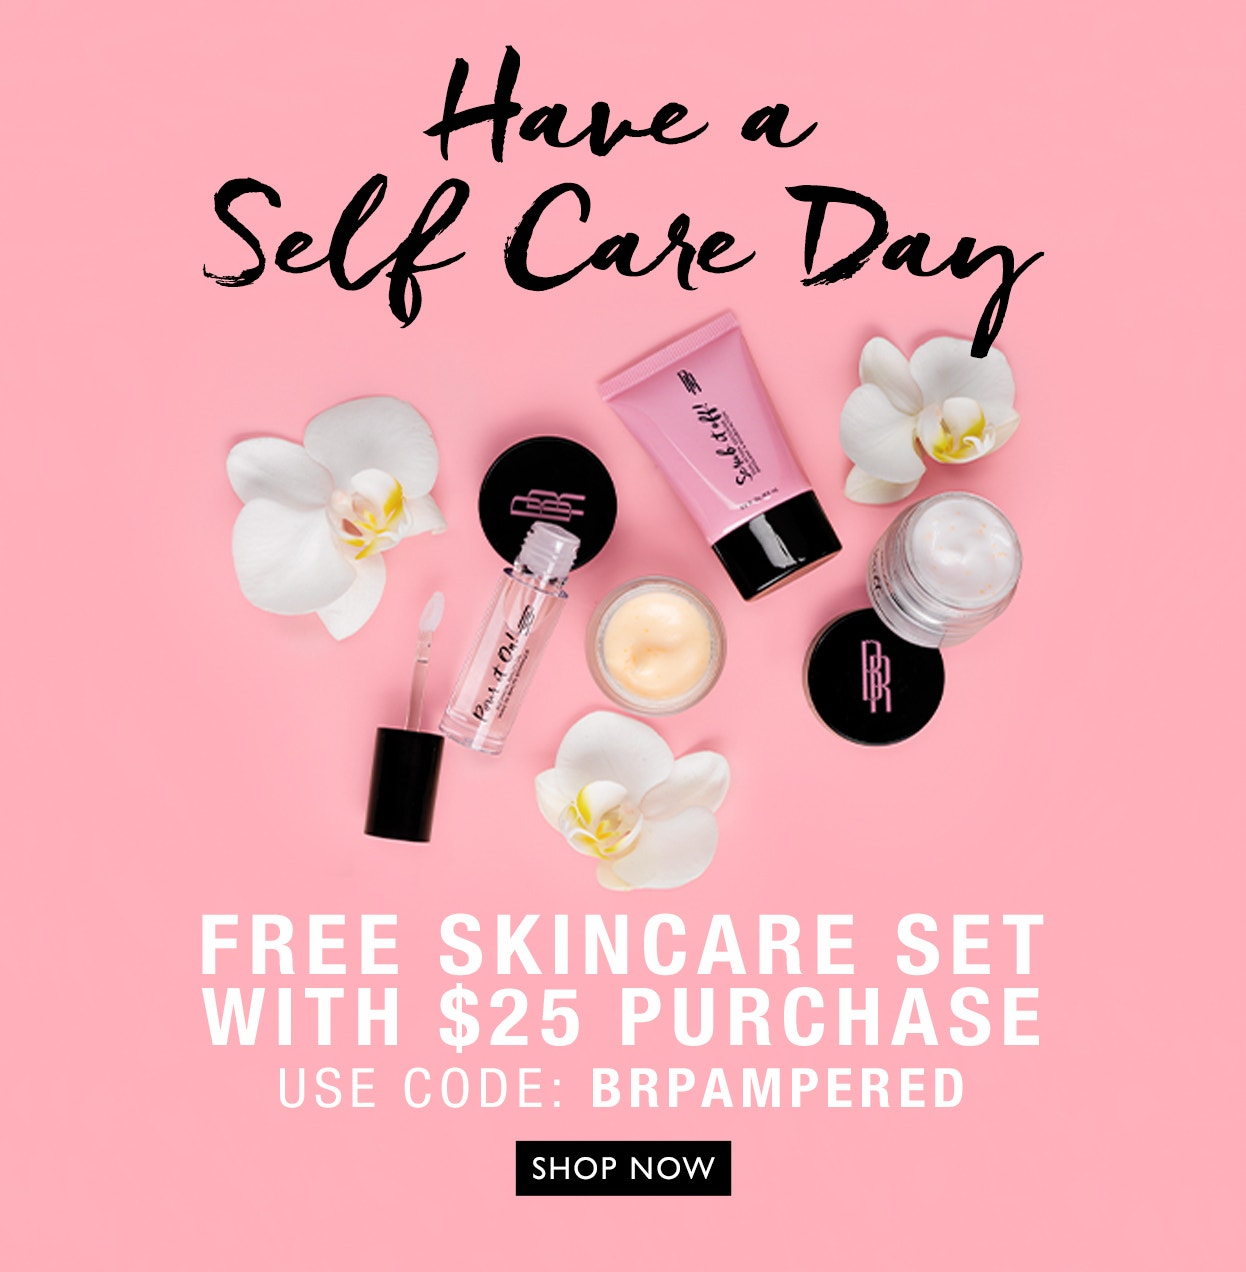 Black Radiance | Have a Self Care Day | Free Skincare set with $25 purchase | Use code: BRPAMPERED | Click Here to shop now